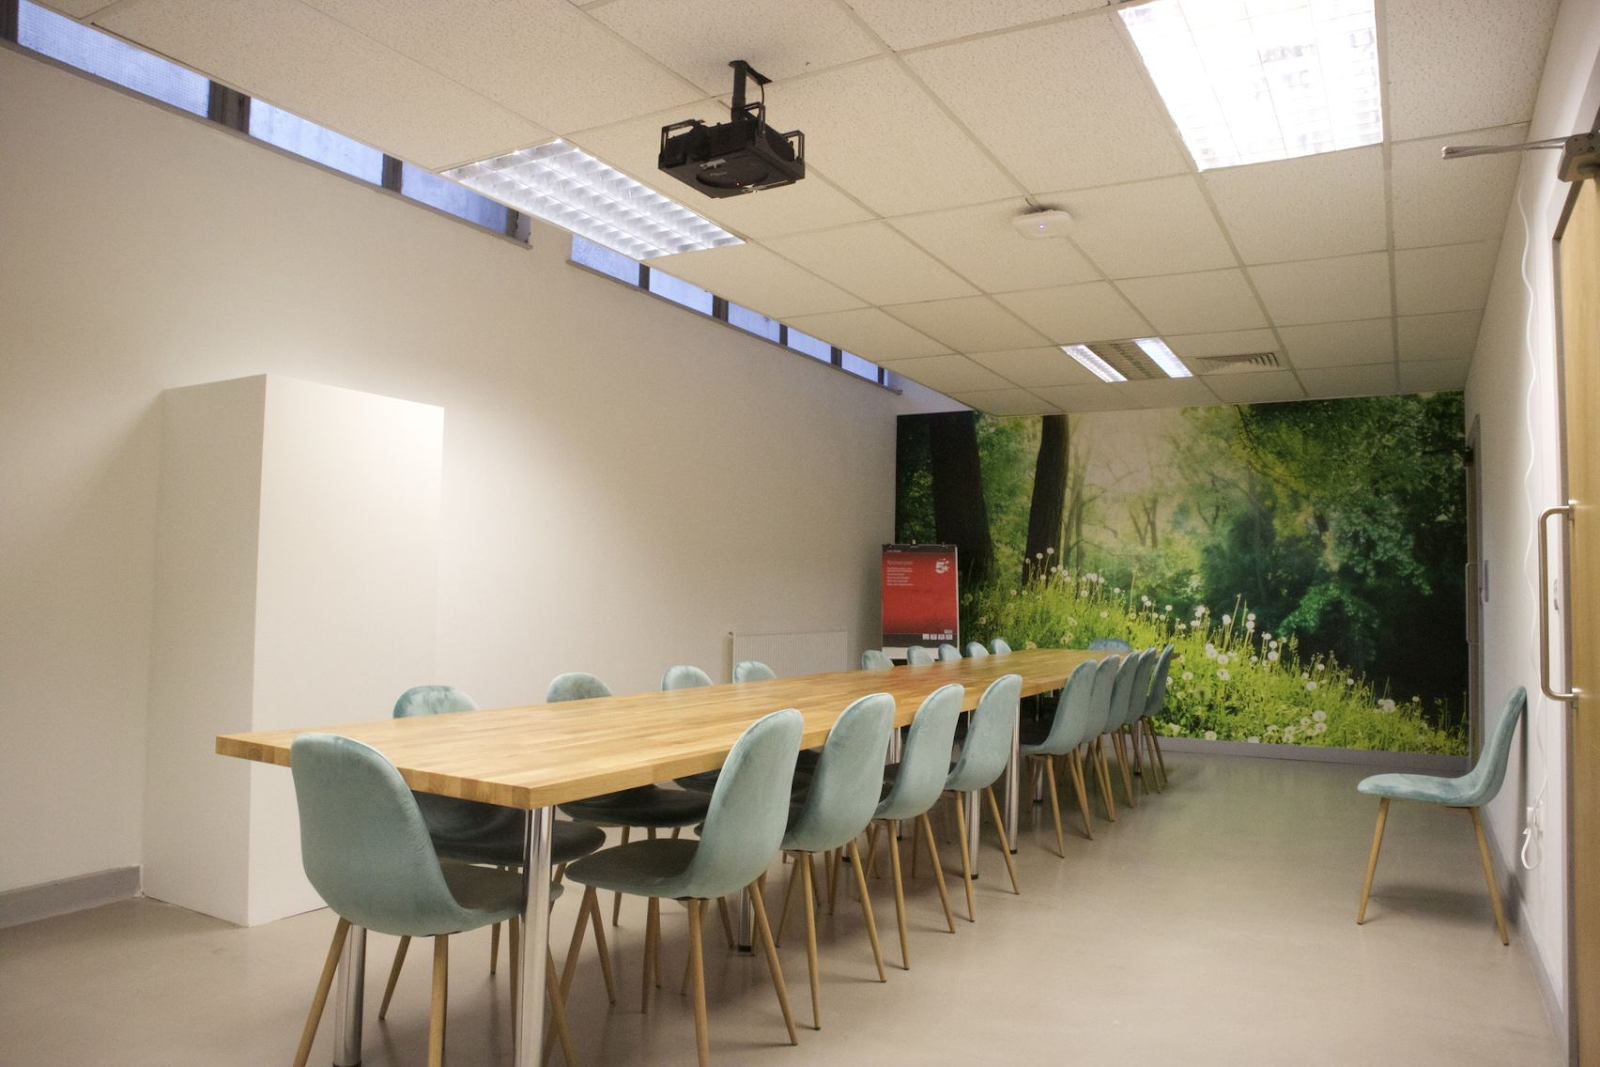 a meeting room with feature wallpaper on the back wall that has a forest scene with a large wooden table and chairs around it